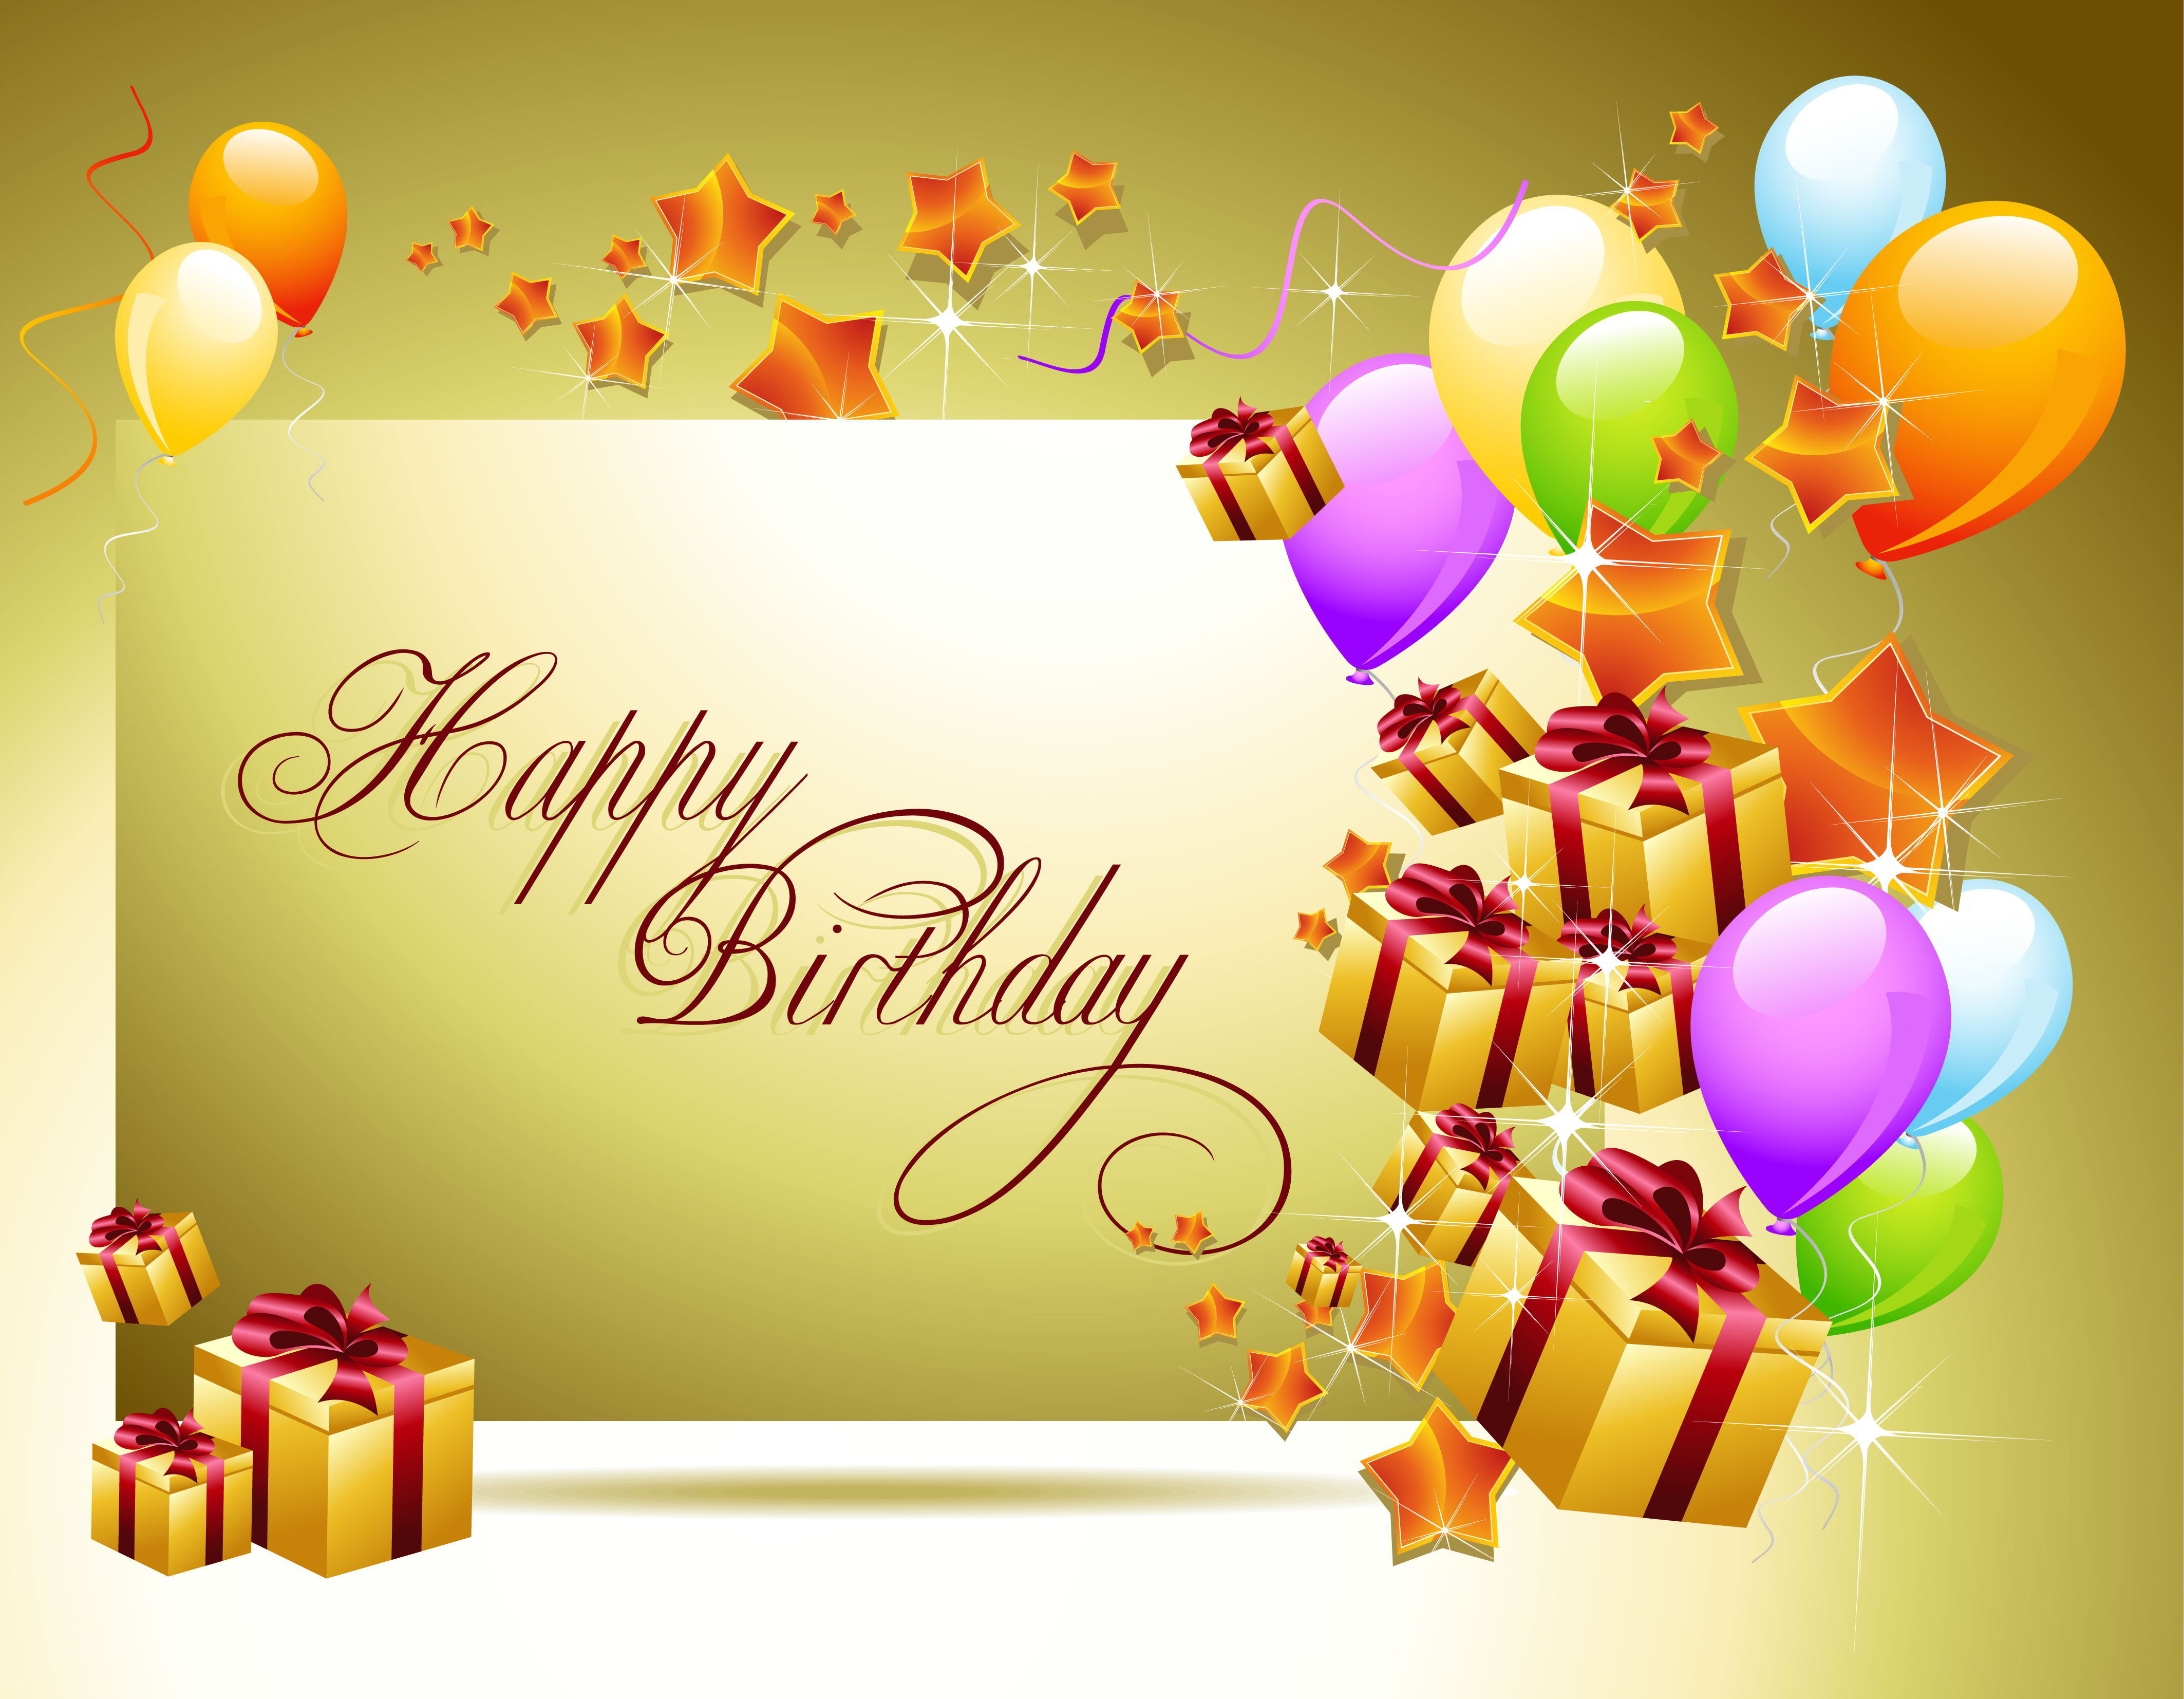 Best ideas about Images Of Birthday Wishes . Save or Pin Exclusive happy birthday wishes messages with HD images Now.